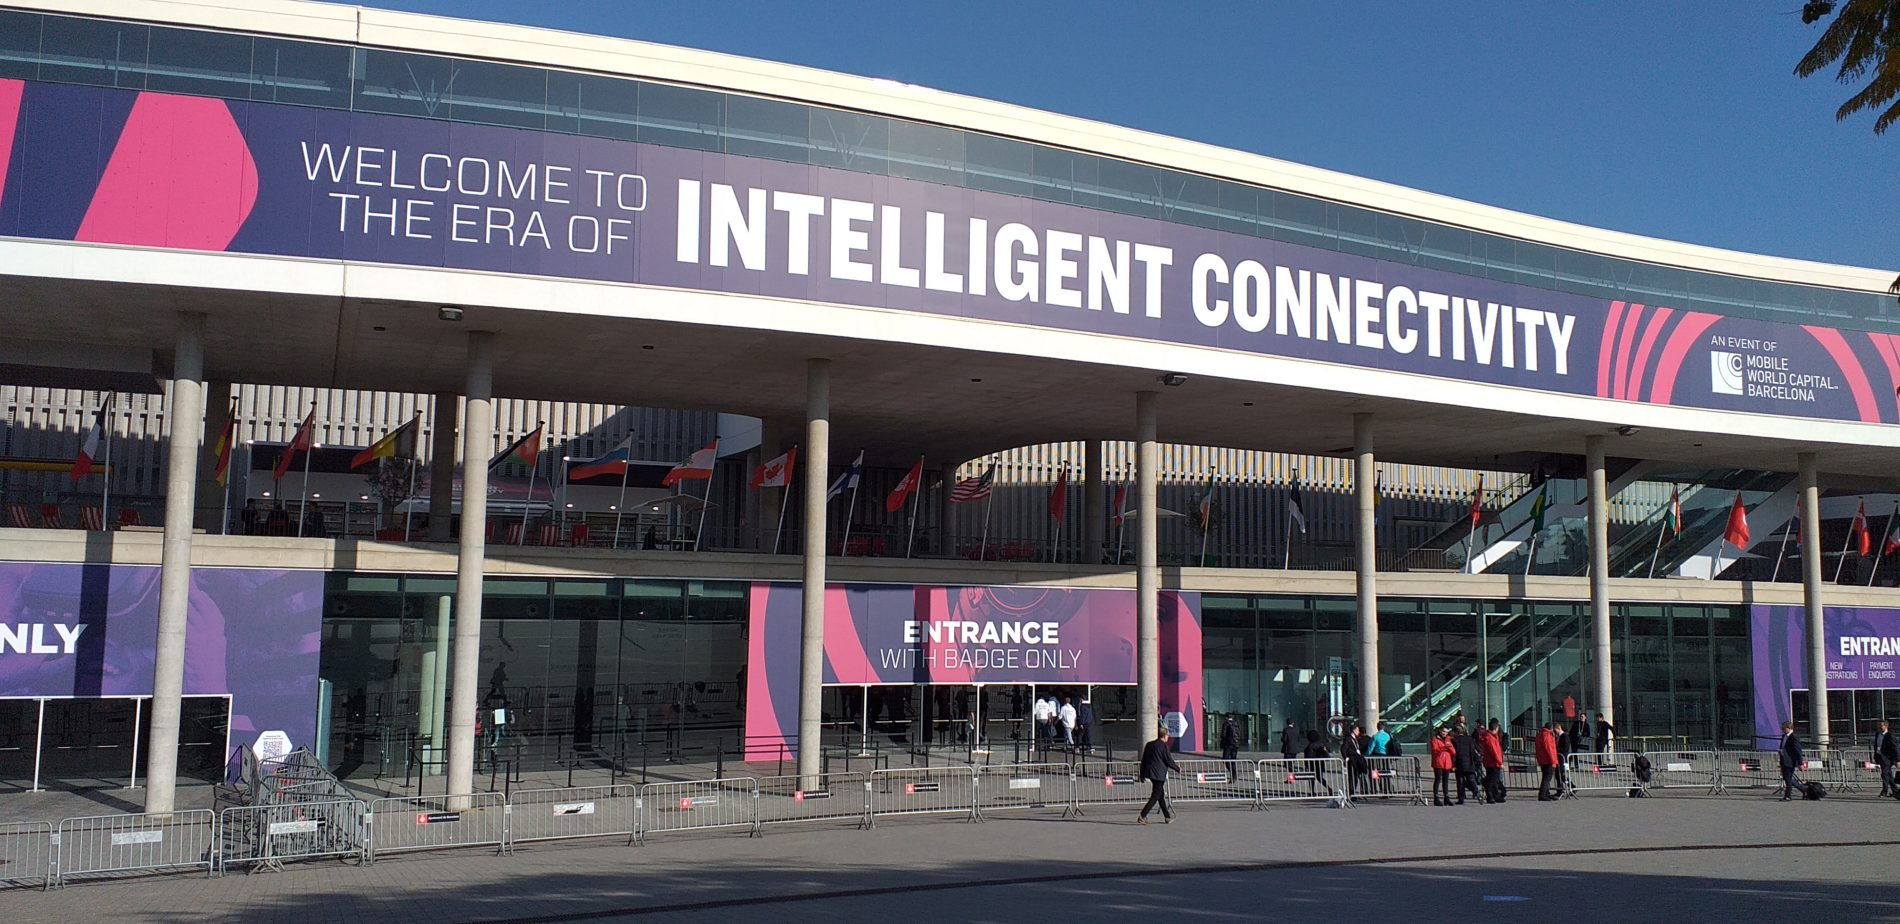 The Arthur Holm smart and connected solutions get to MWC19 Barcelona!